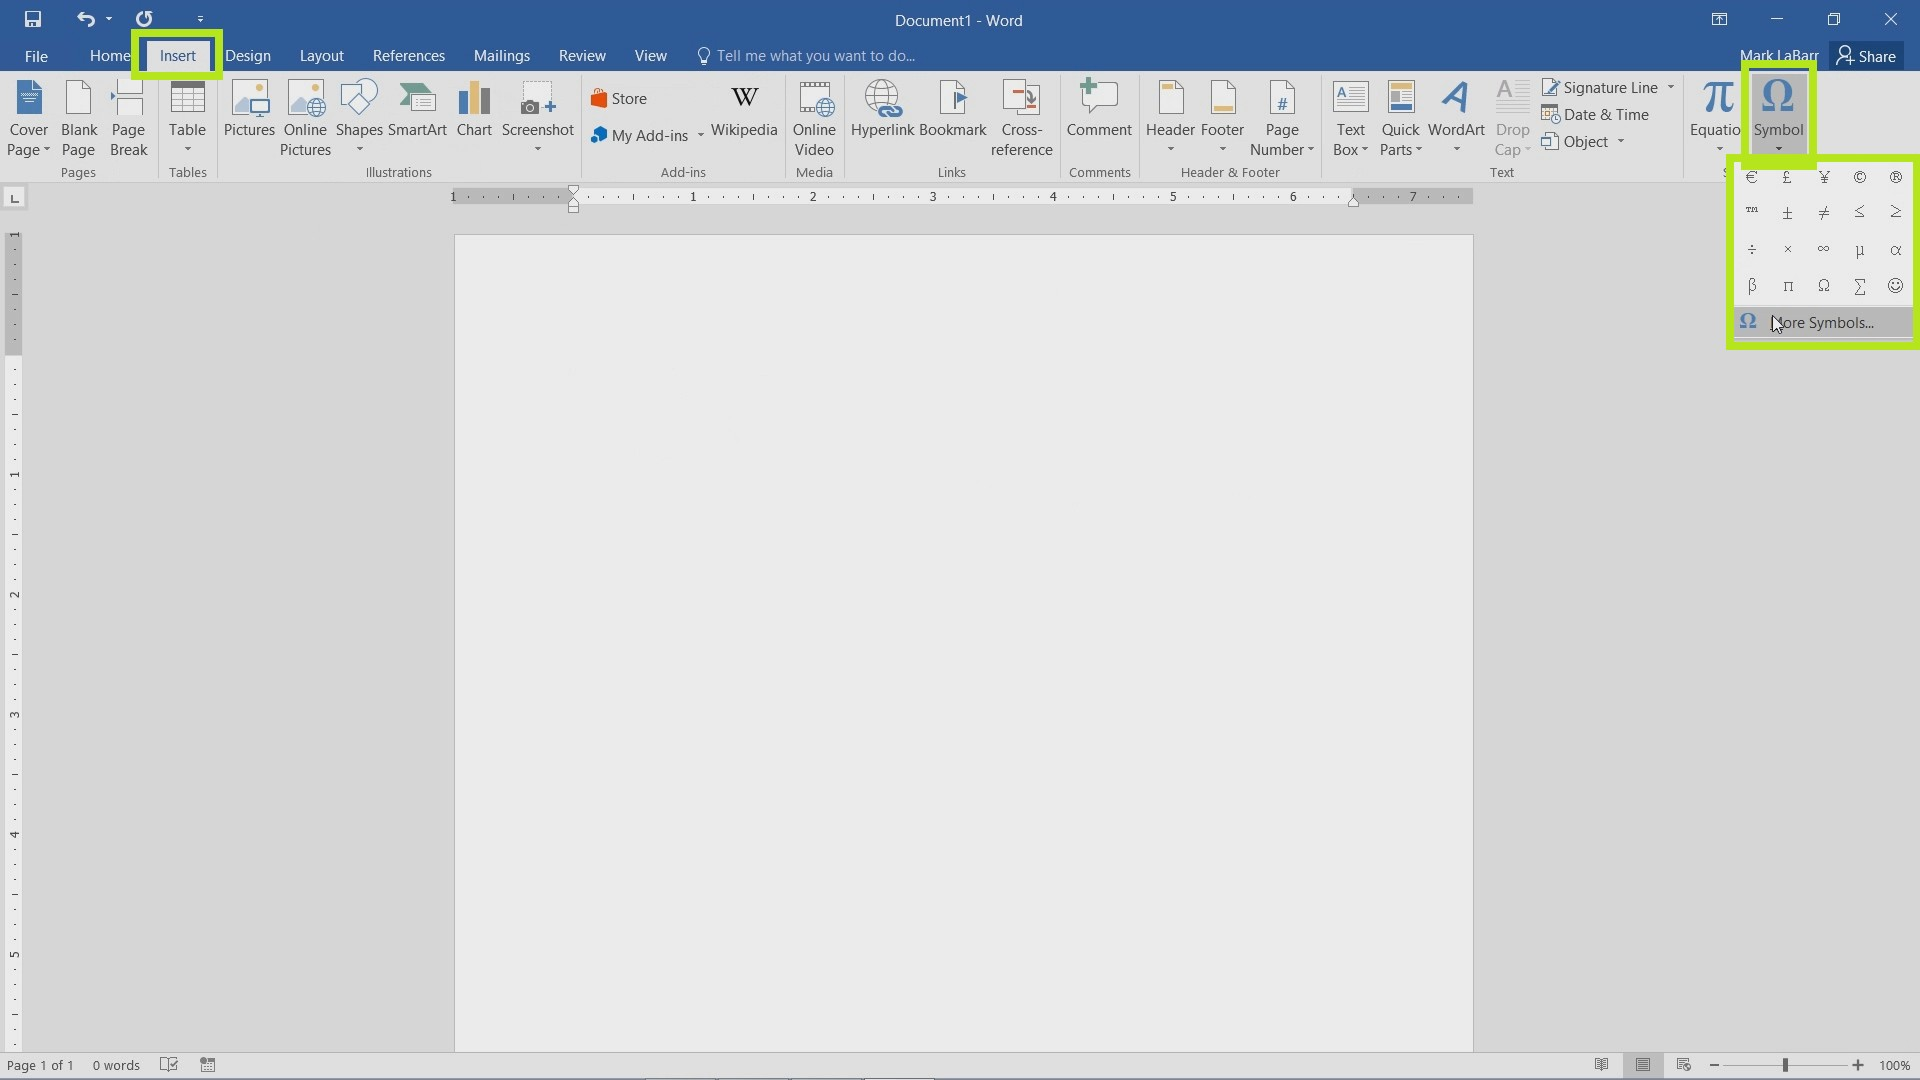 Type and Insert Symbols in Word 2016